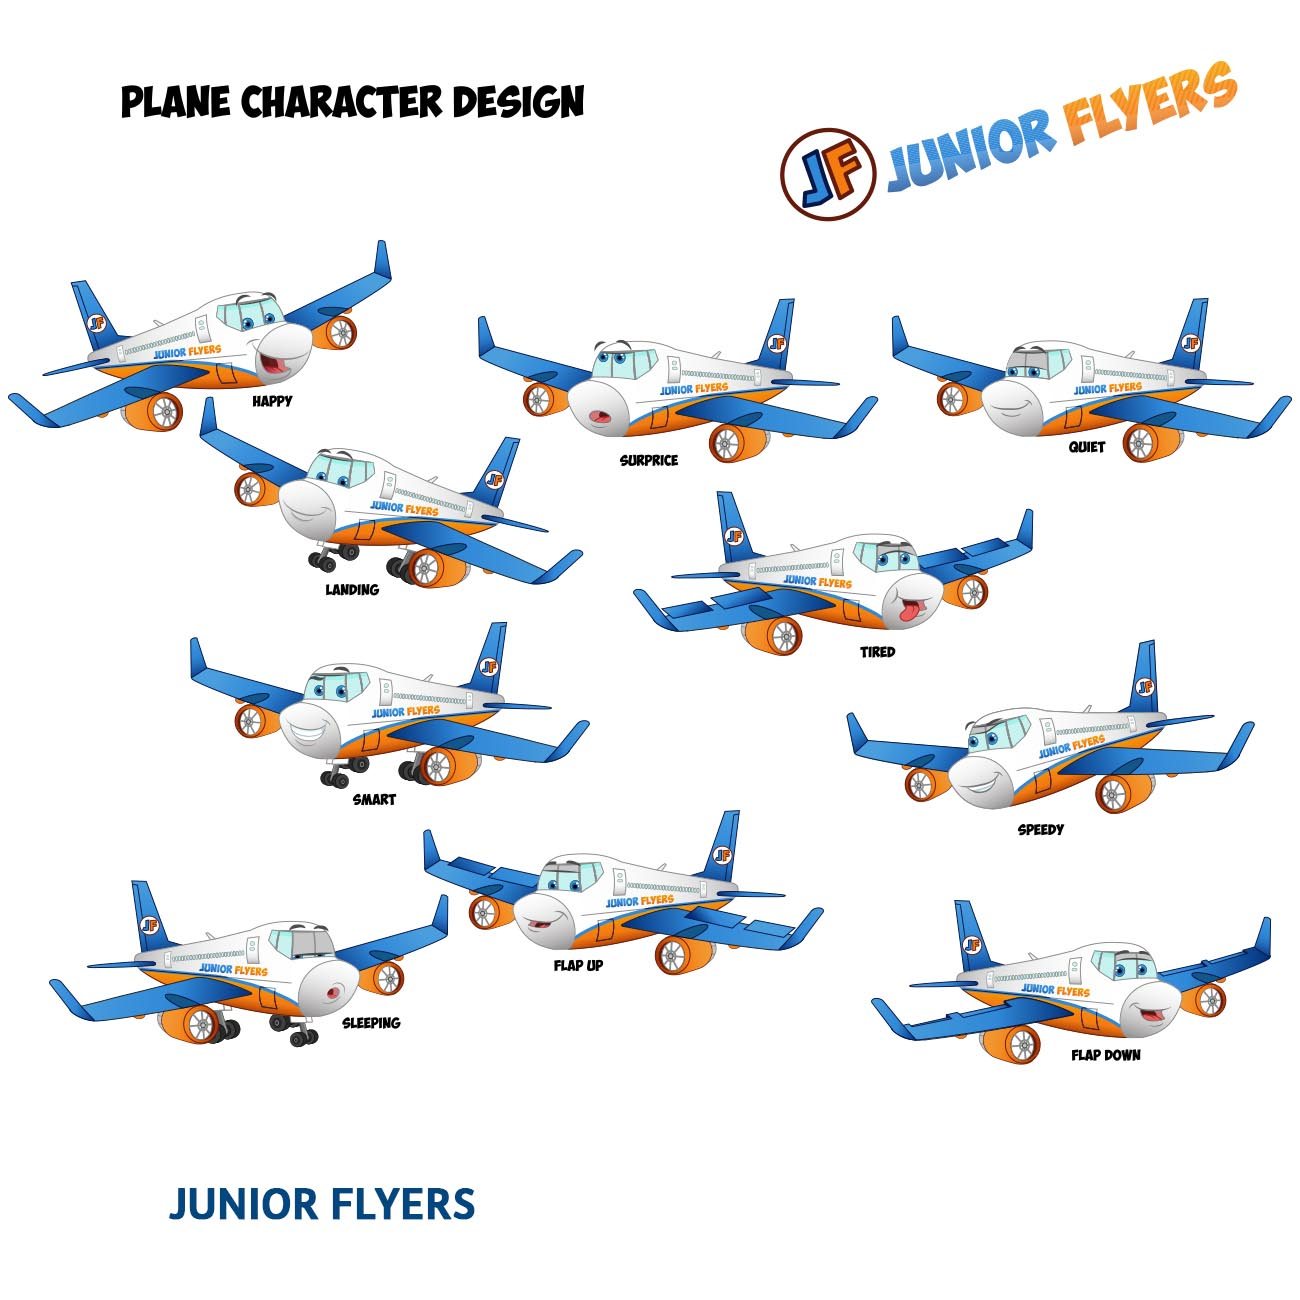 Plane Character Design